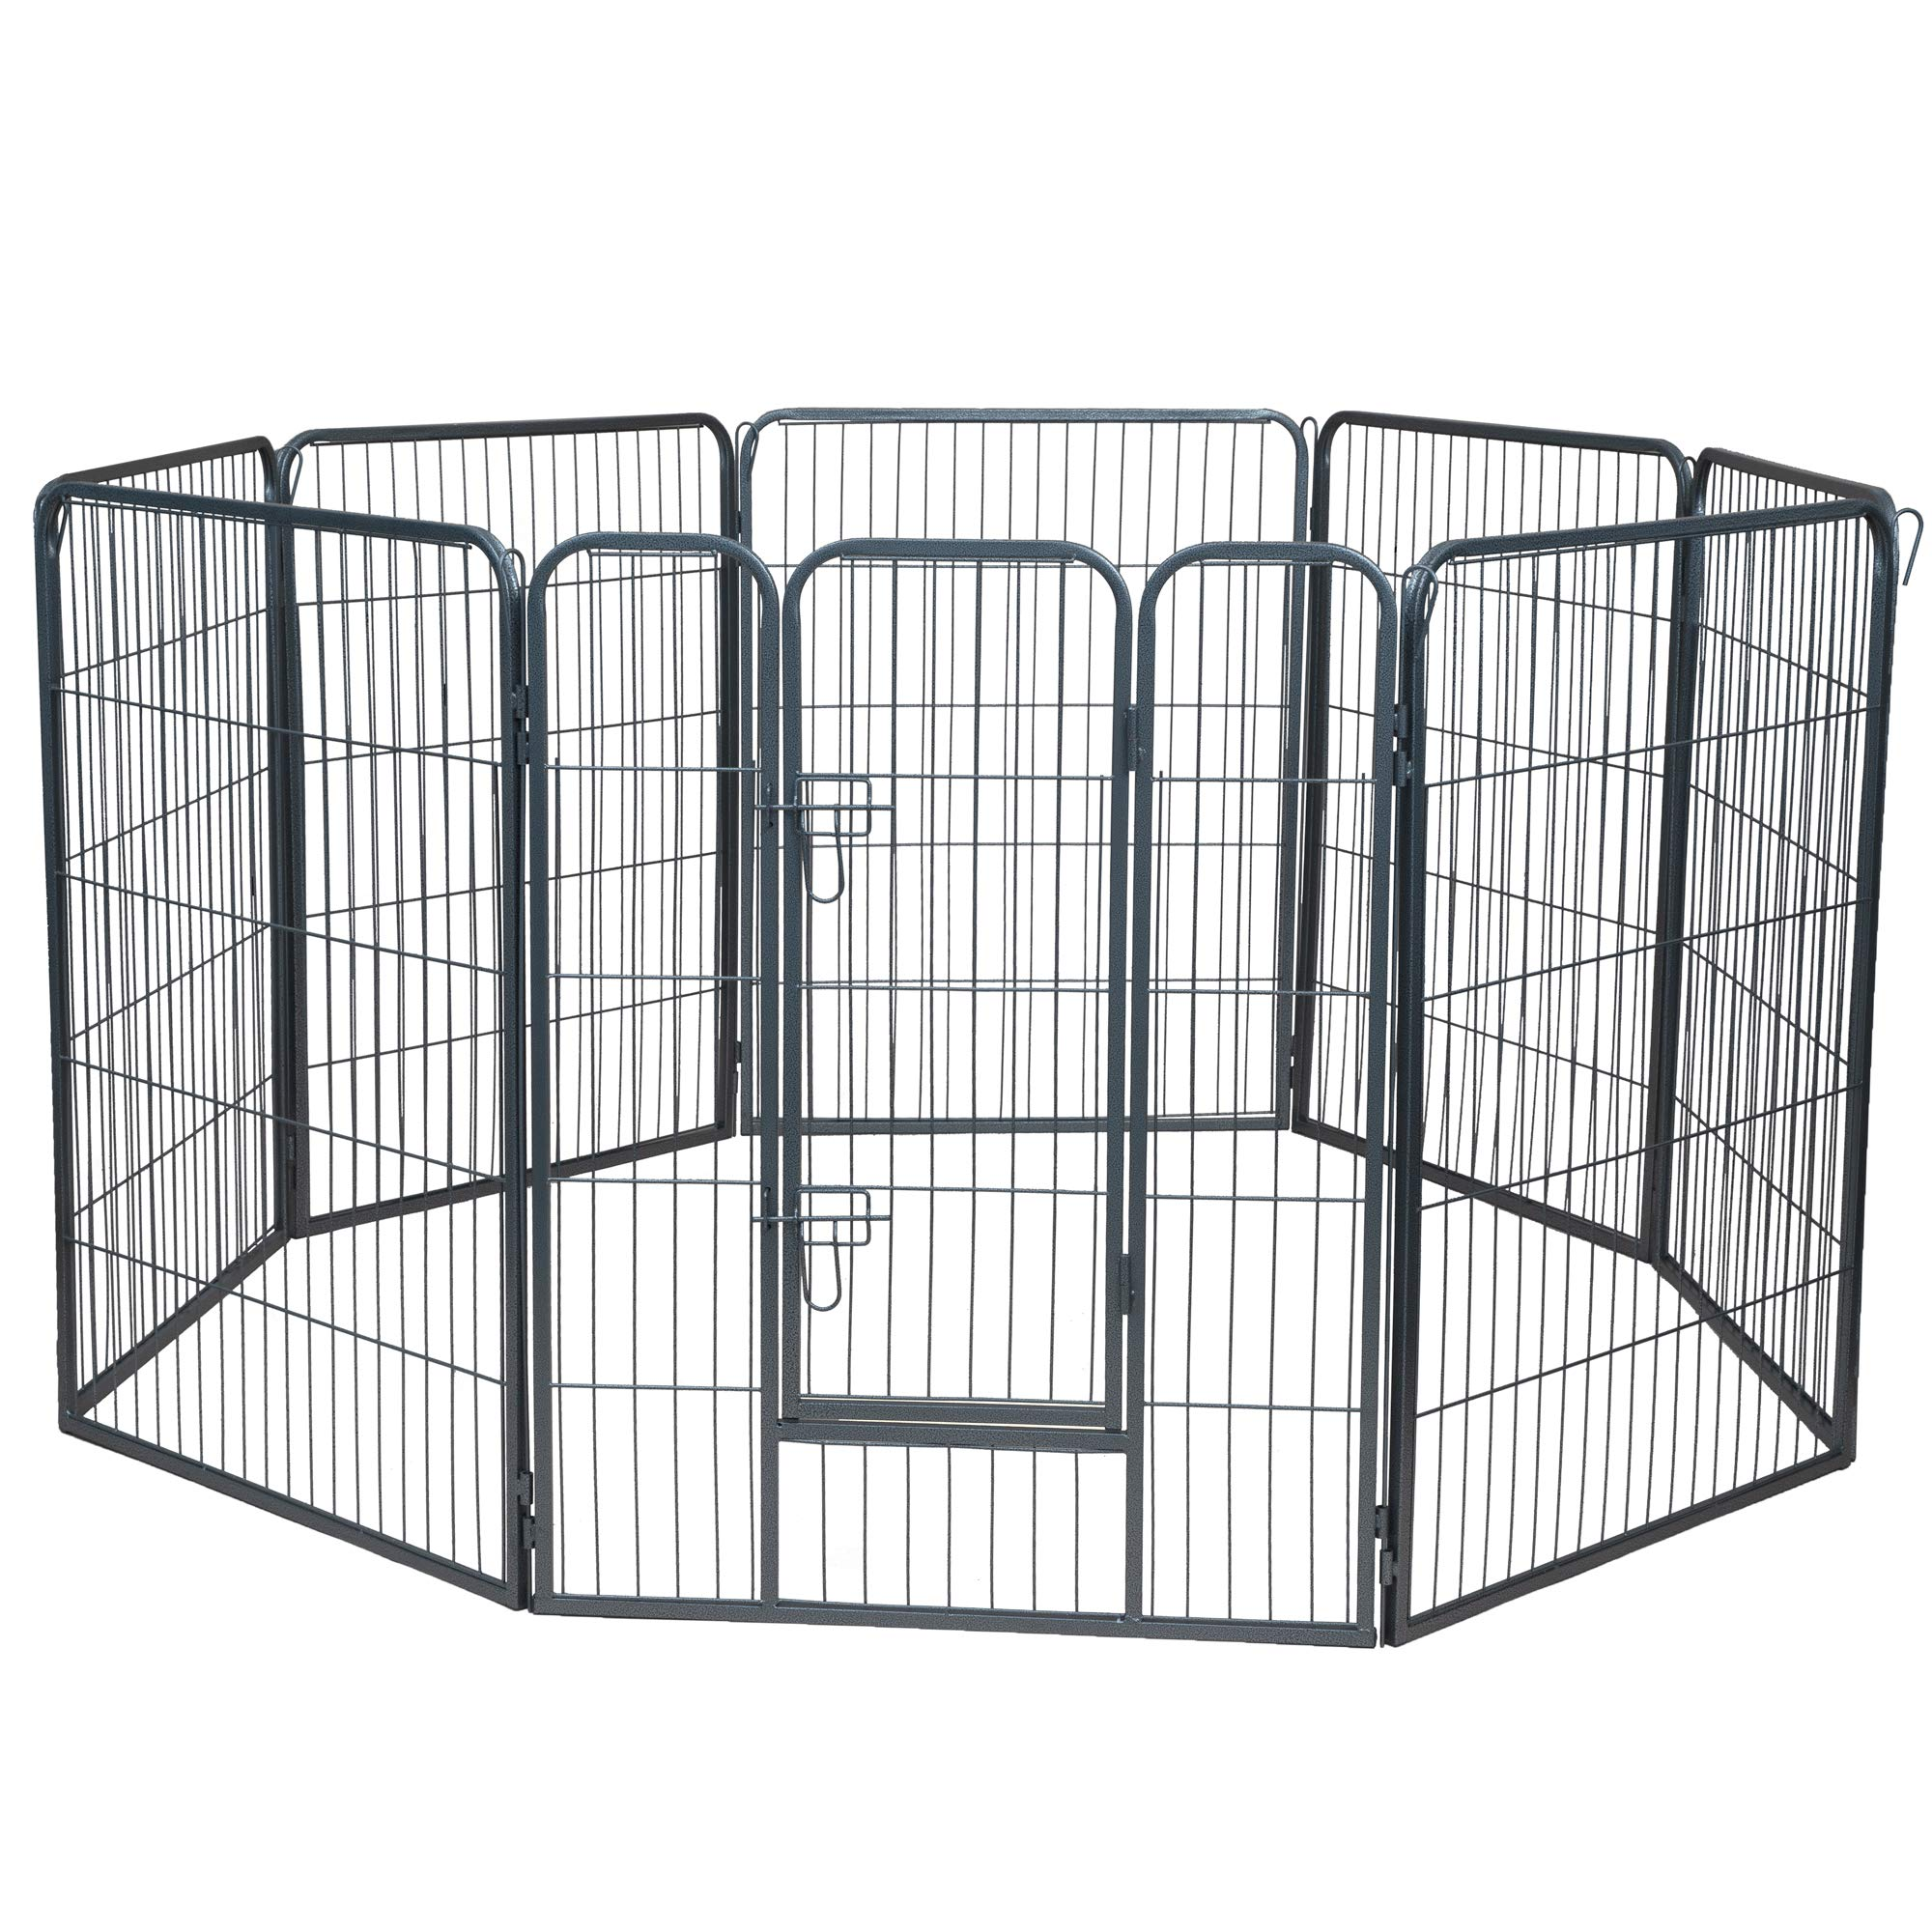 Wire Pen Dog Fence Playpen - Pet Dogs & Cats Outdoor Exercise Pens - Tube Gate w/Door - (8 Panel / 30 Square Feet Play Yard) Heavy Duty Portable Folding Metal Animal Cage Corral - 40'' Height Fences by Paws & Pals